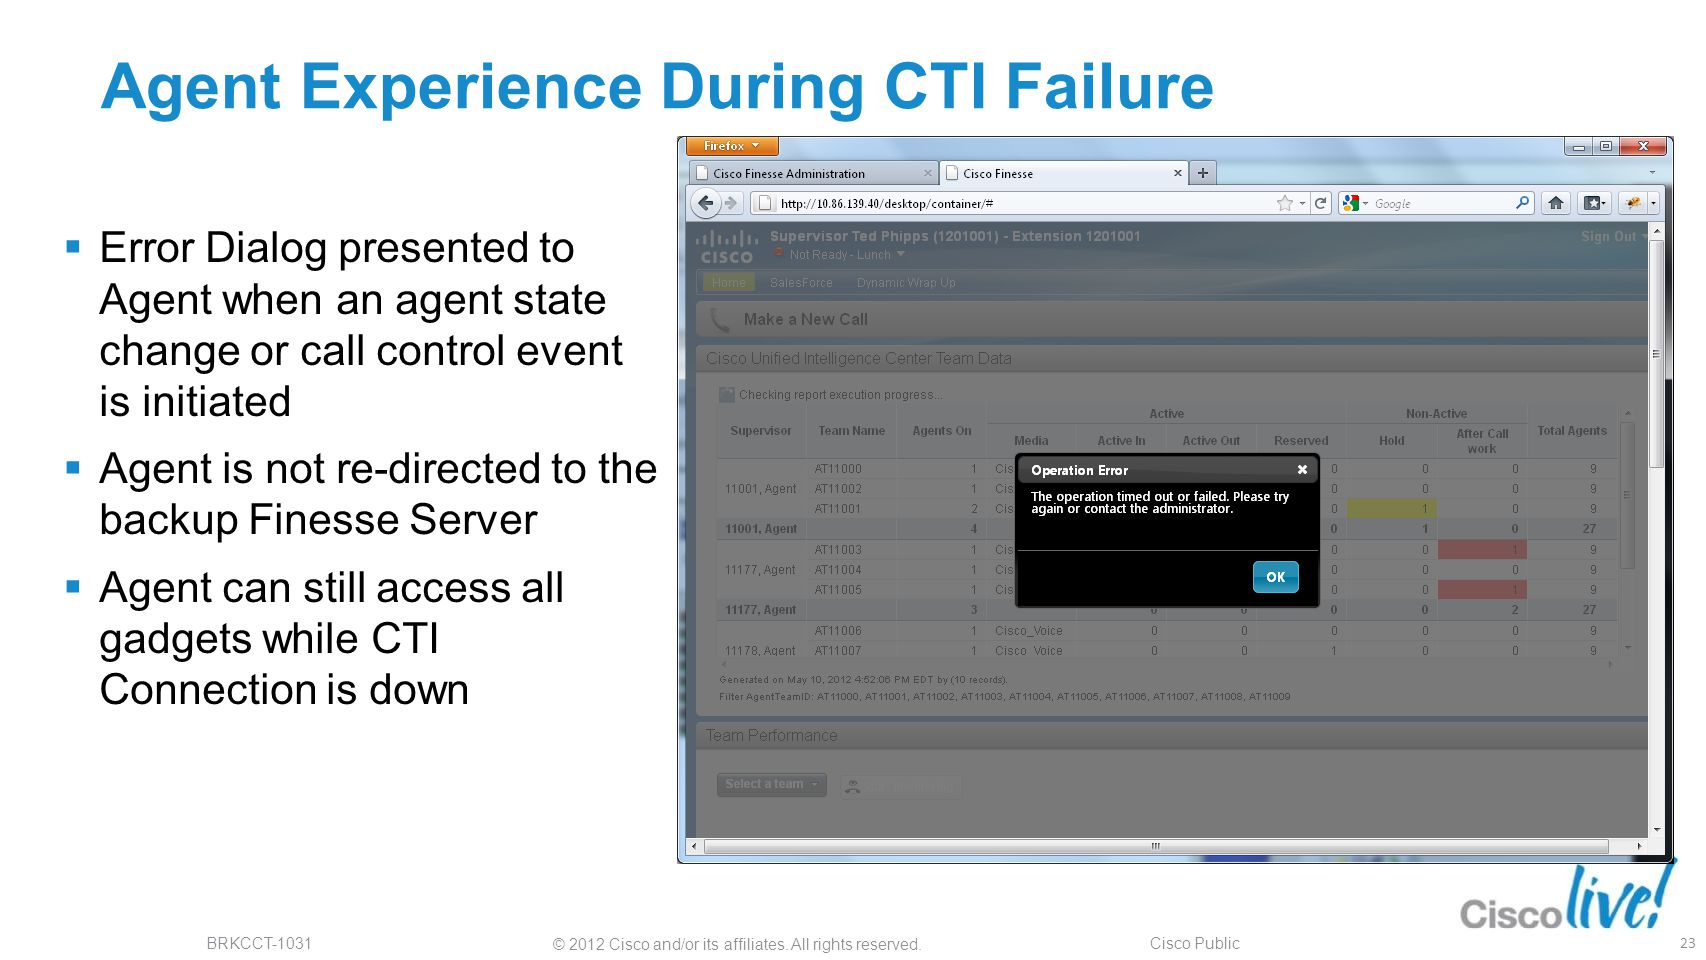 Agent Experience During CTI Failure